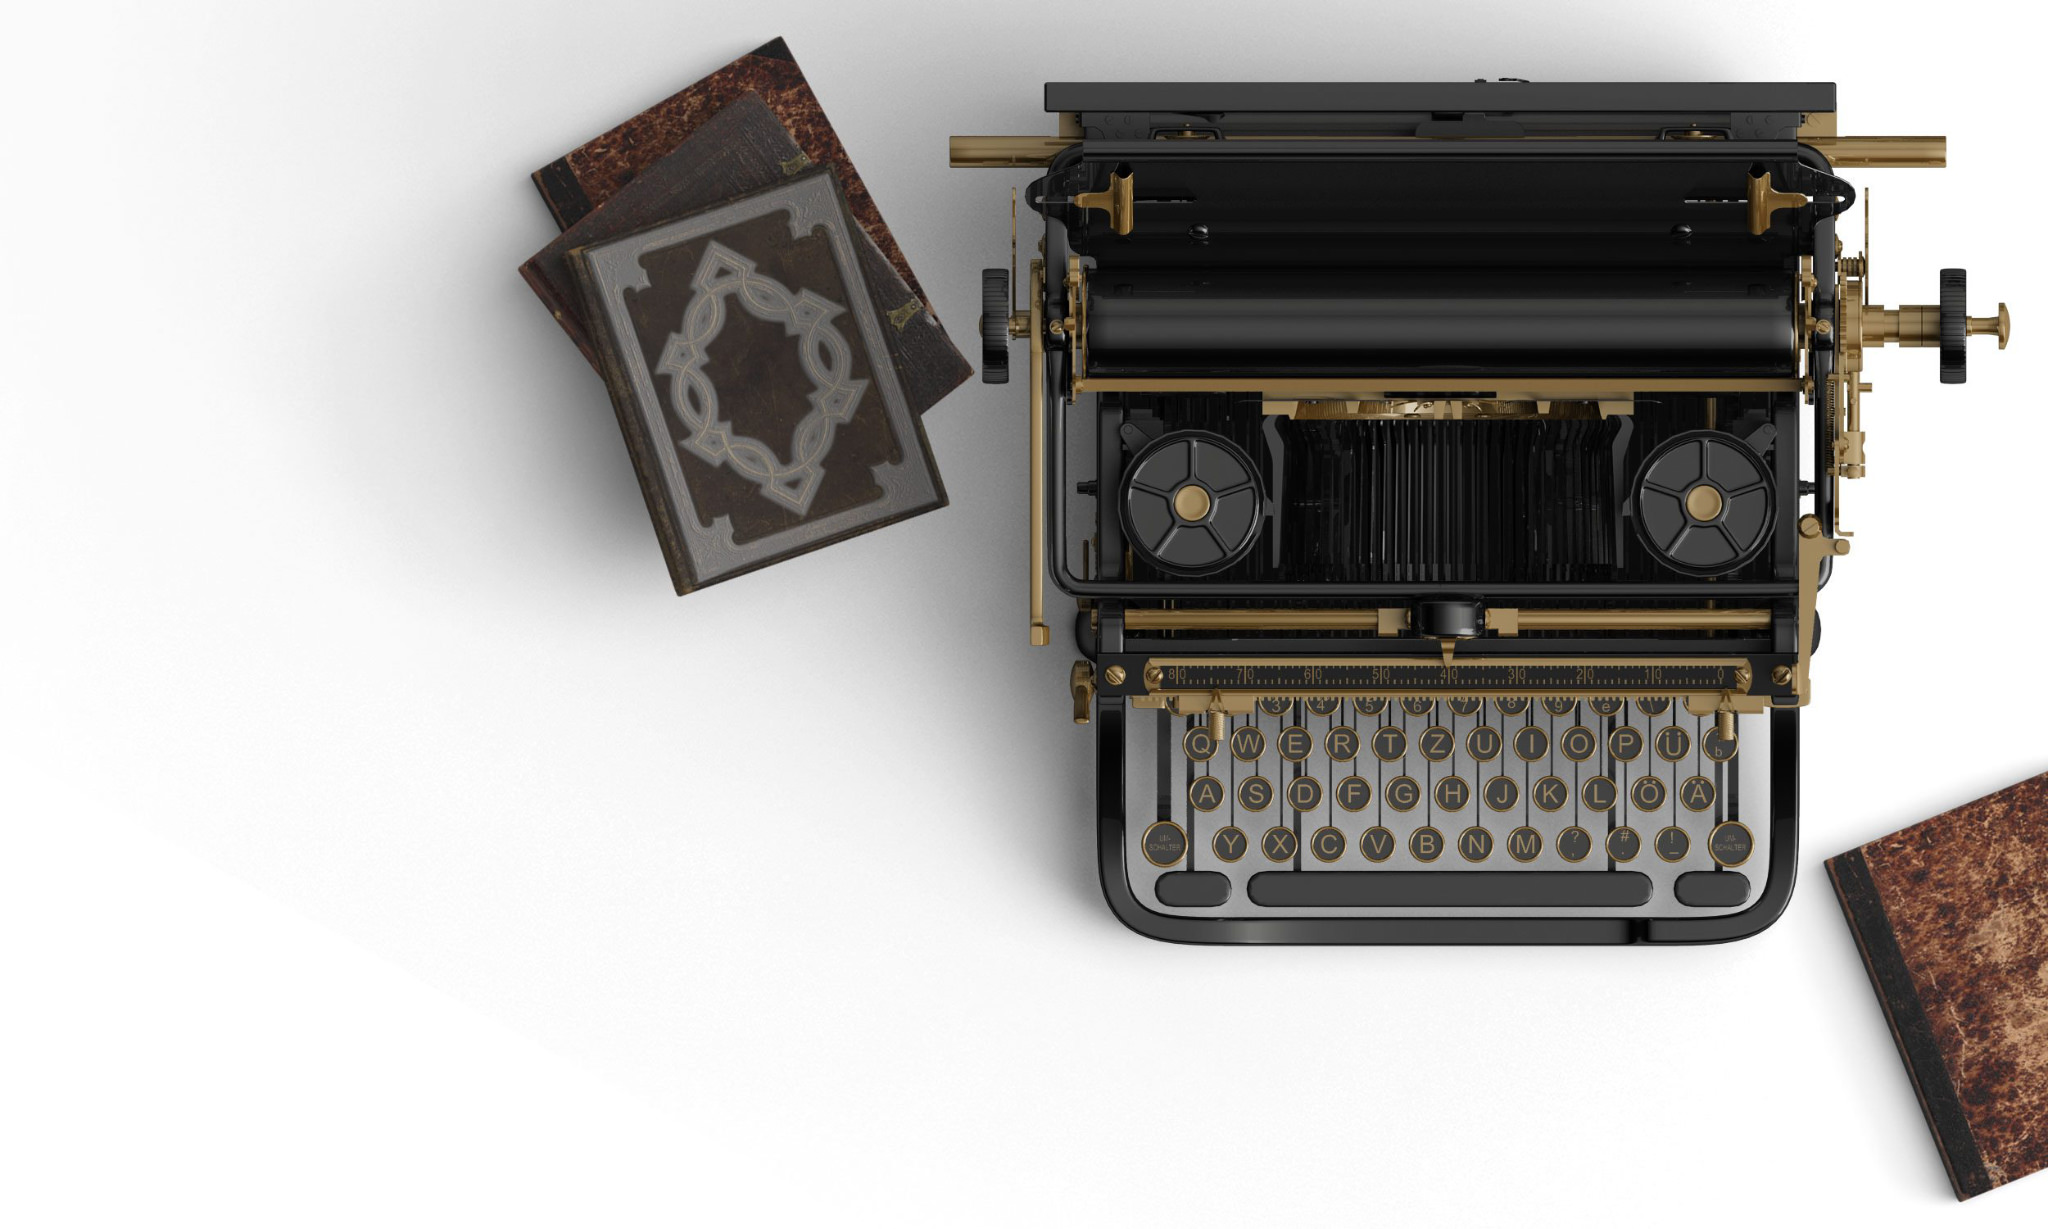 An old fashioned typewriter that symbolises a writing resource.